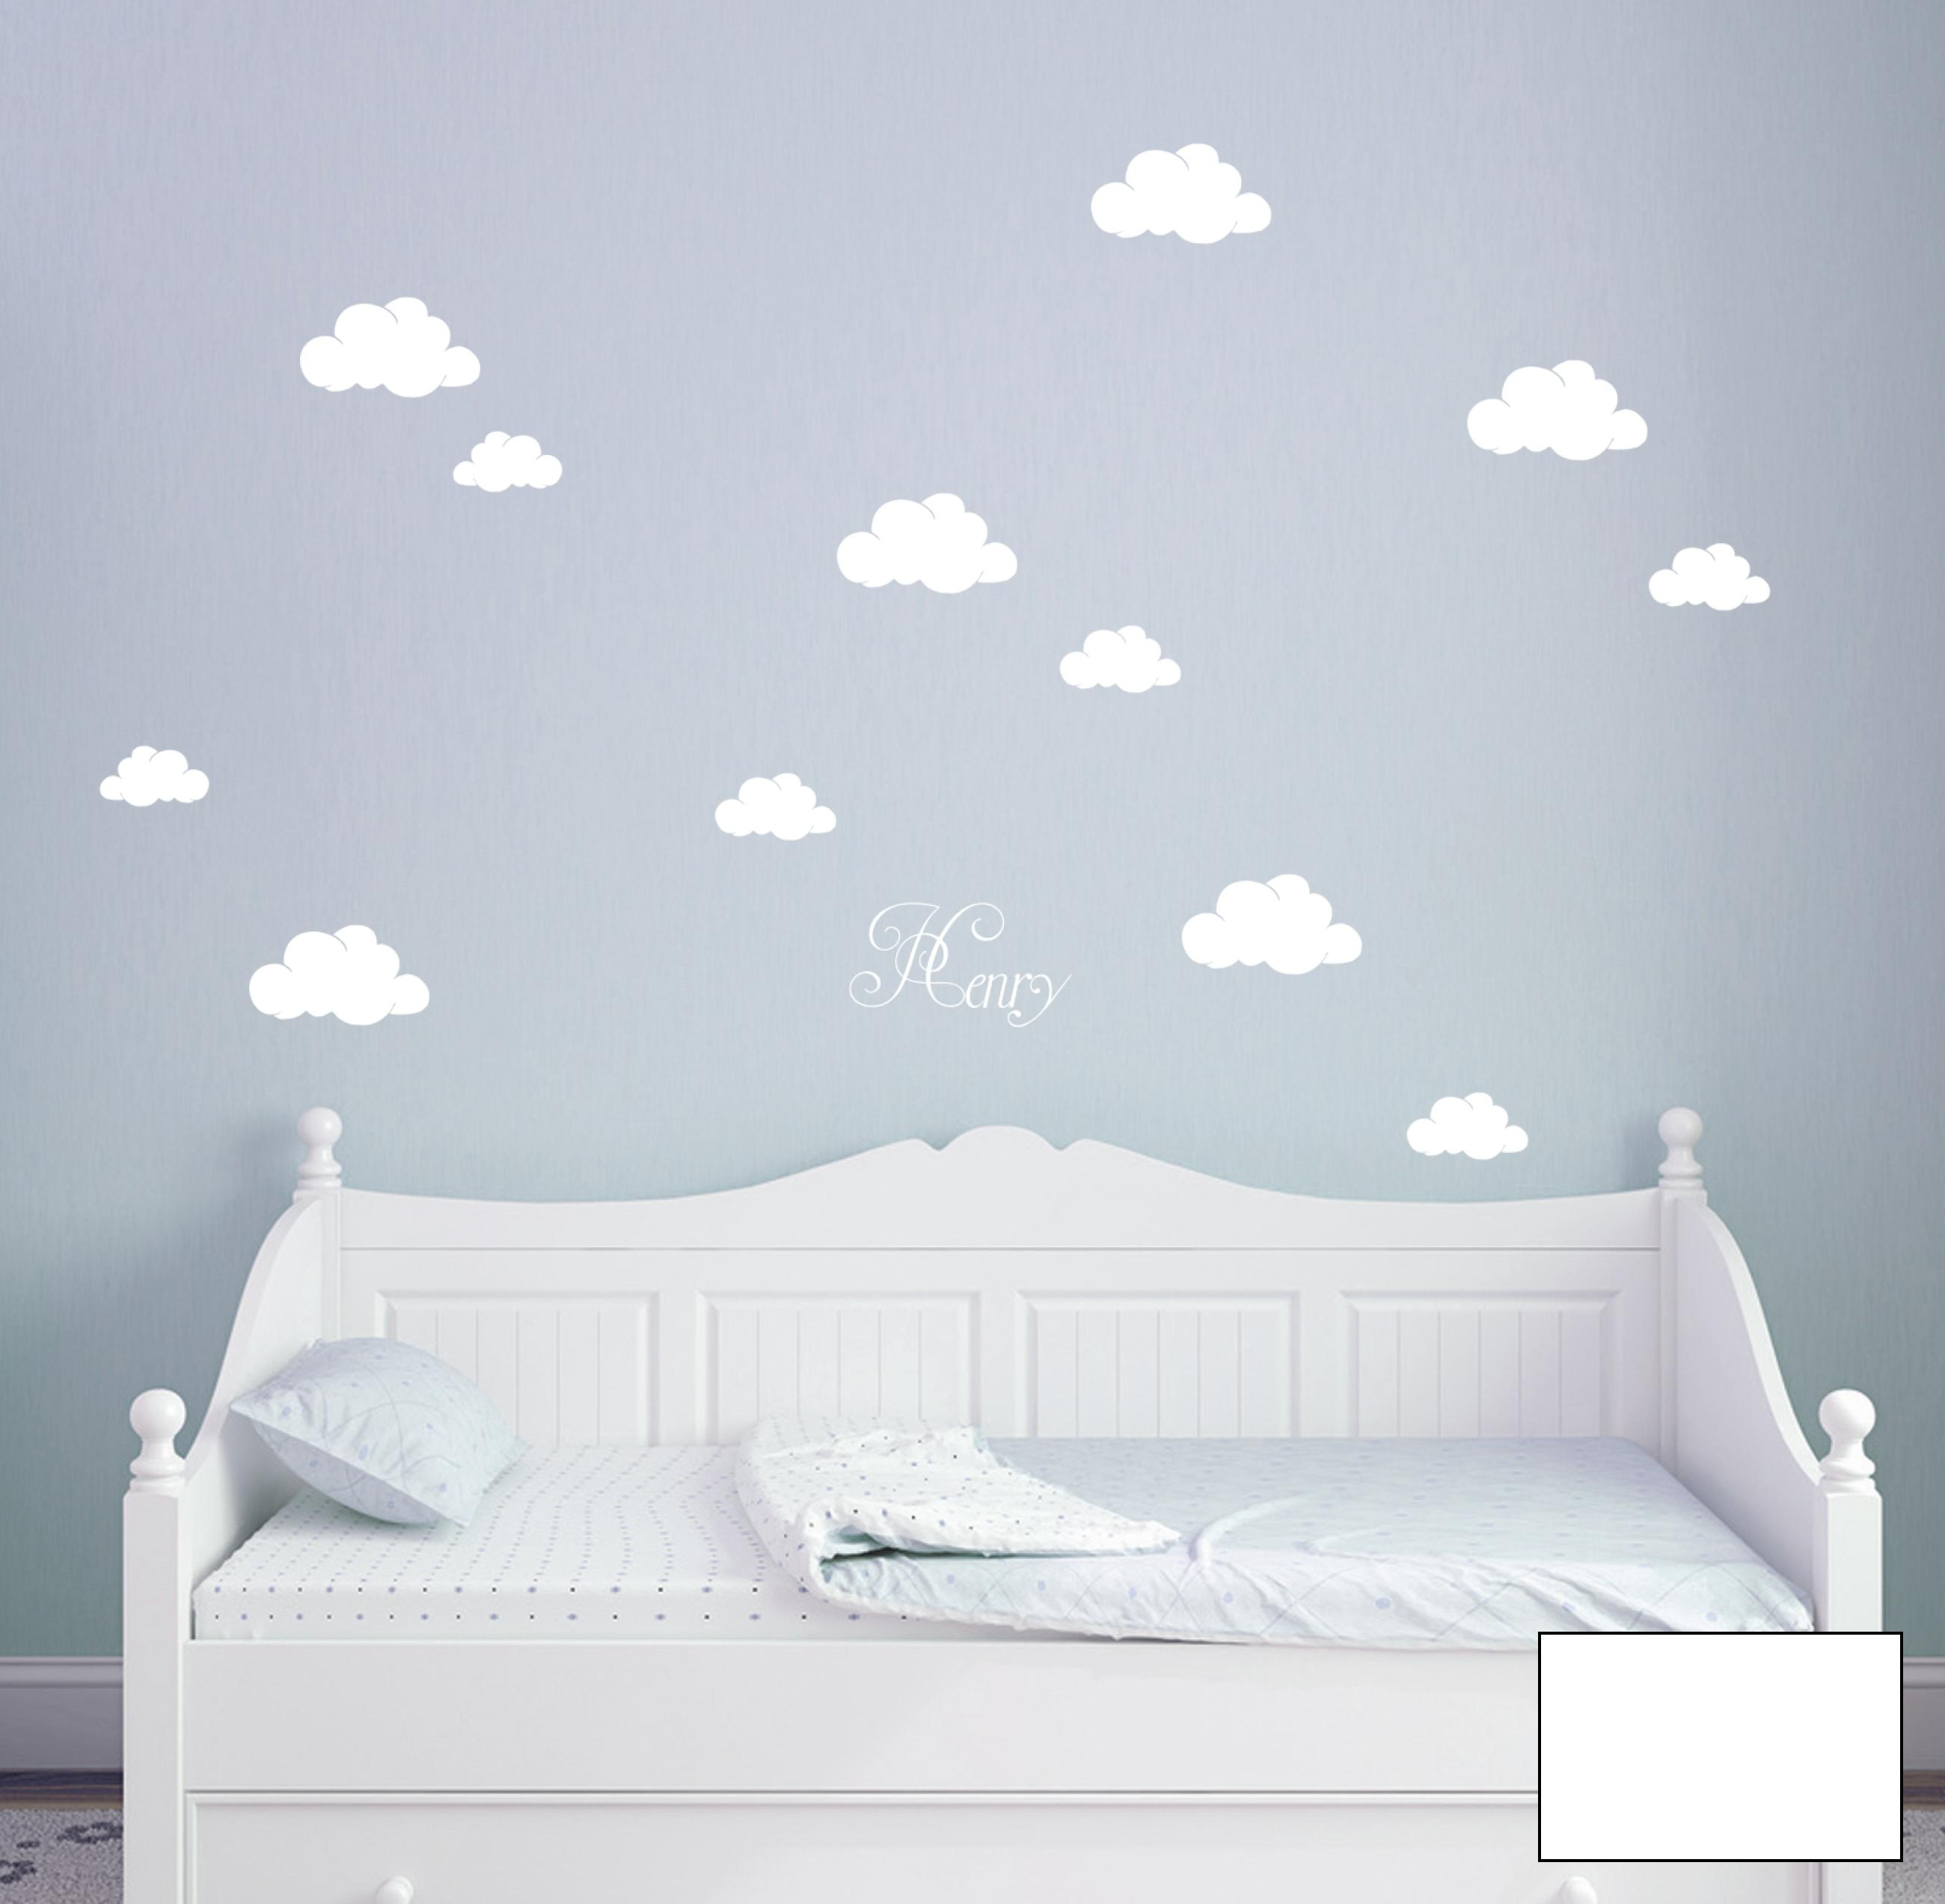 wandtattoo wolken w lkchen himmel mit namen m1682 ebay. Black Bedroom Furniture Sets. Home Design Ideas